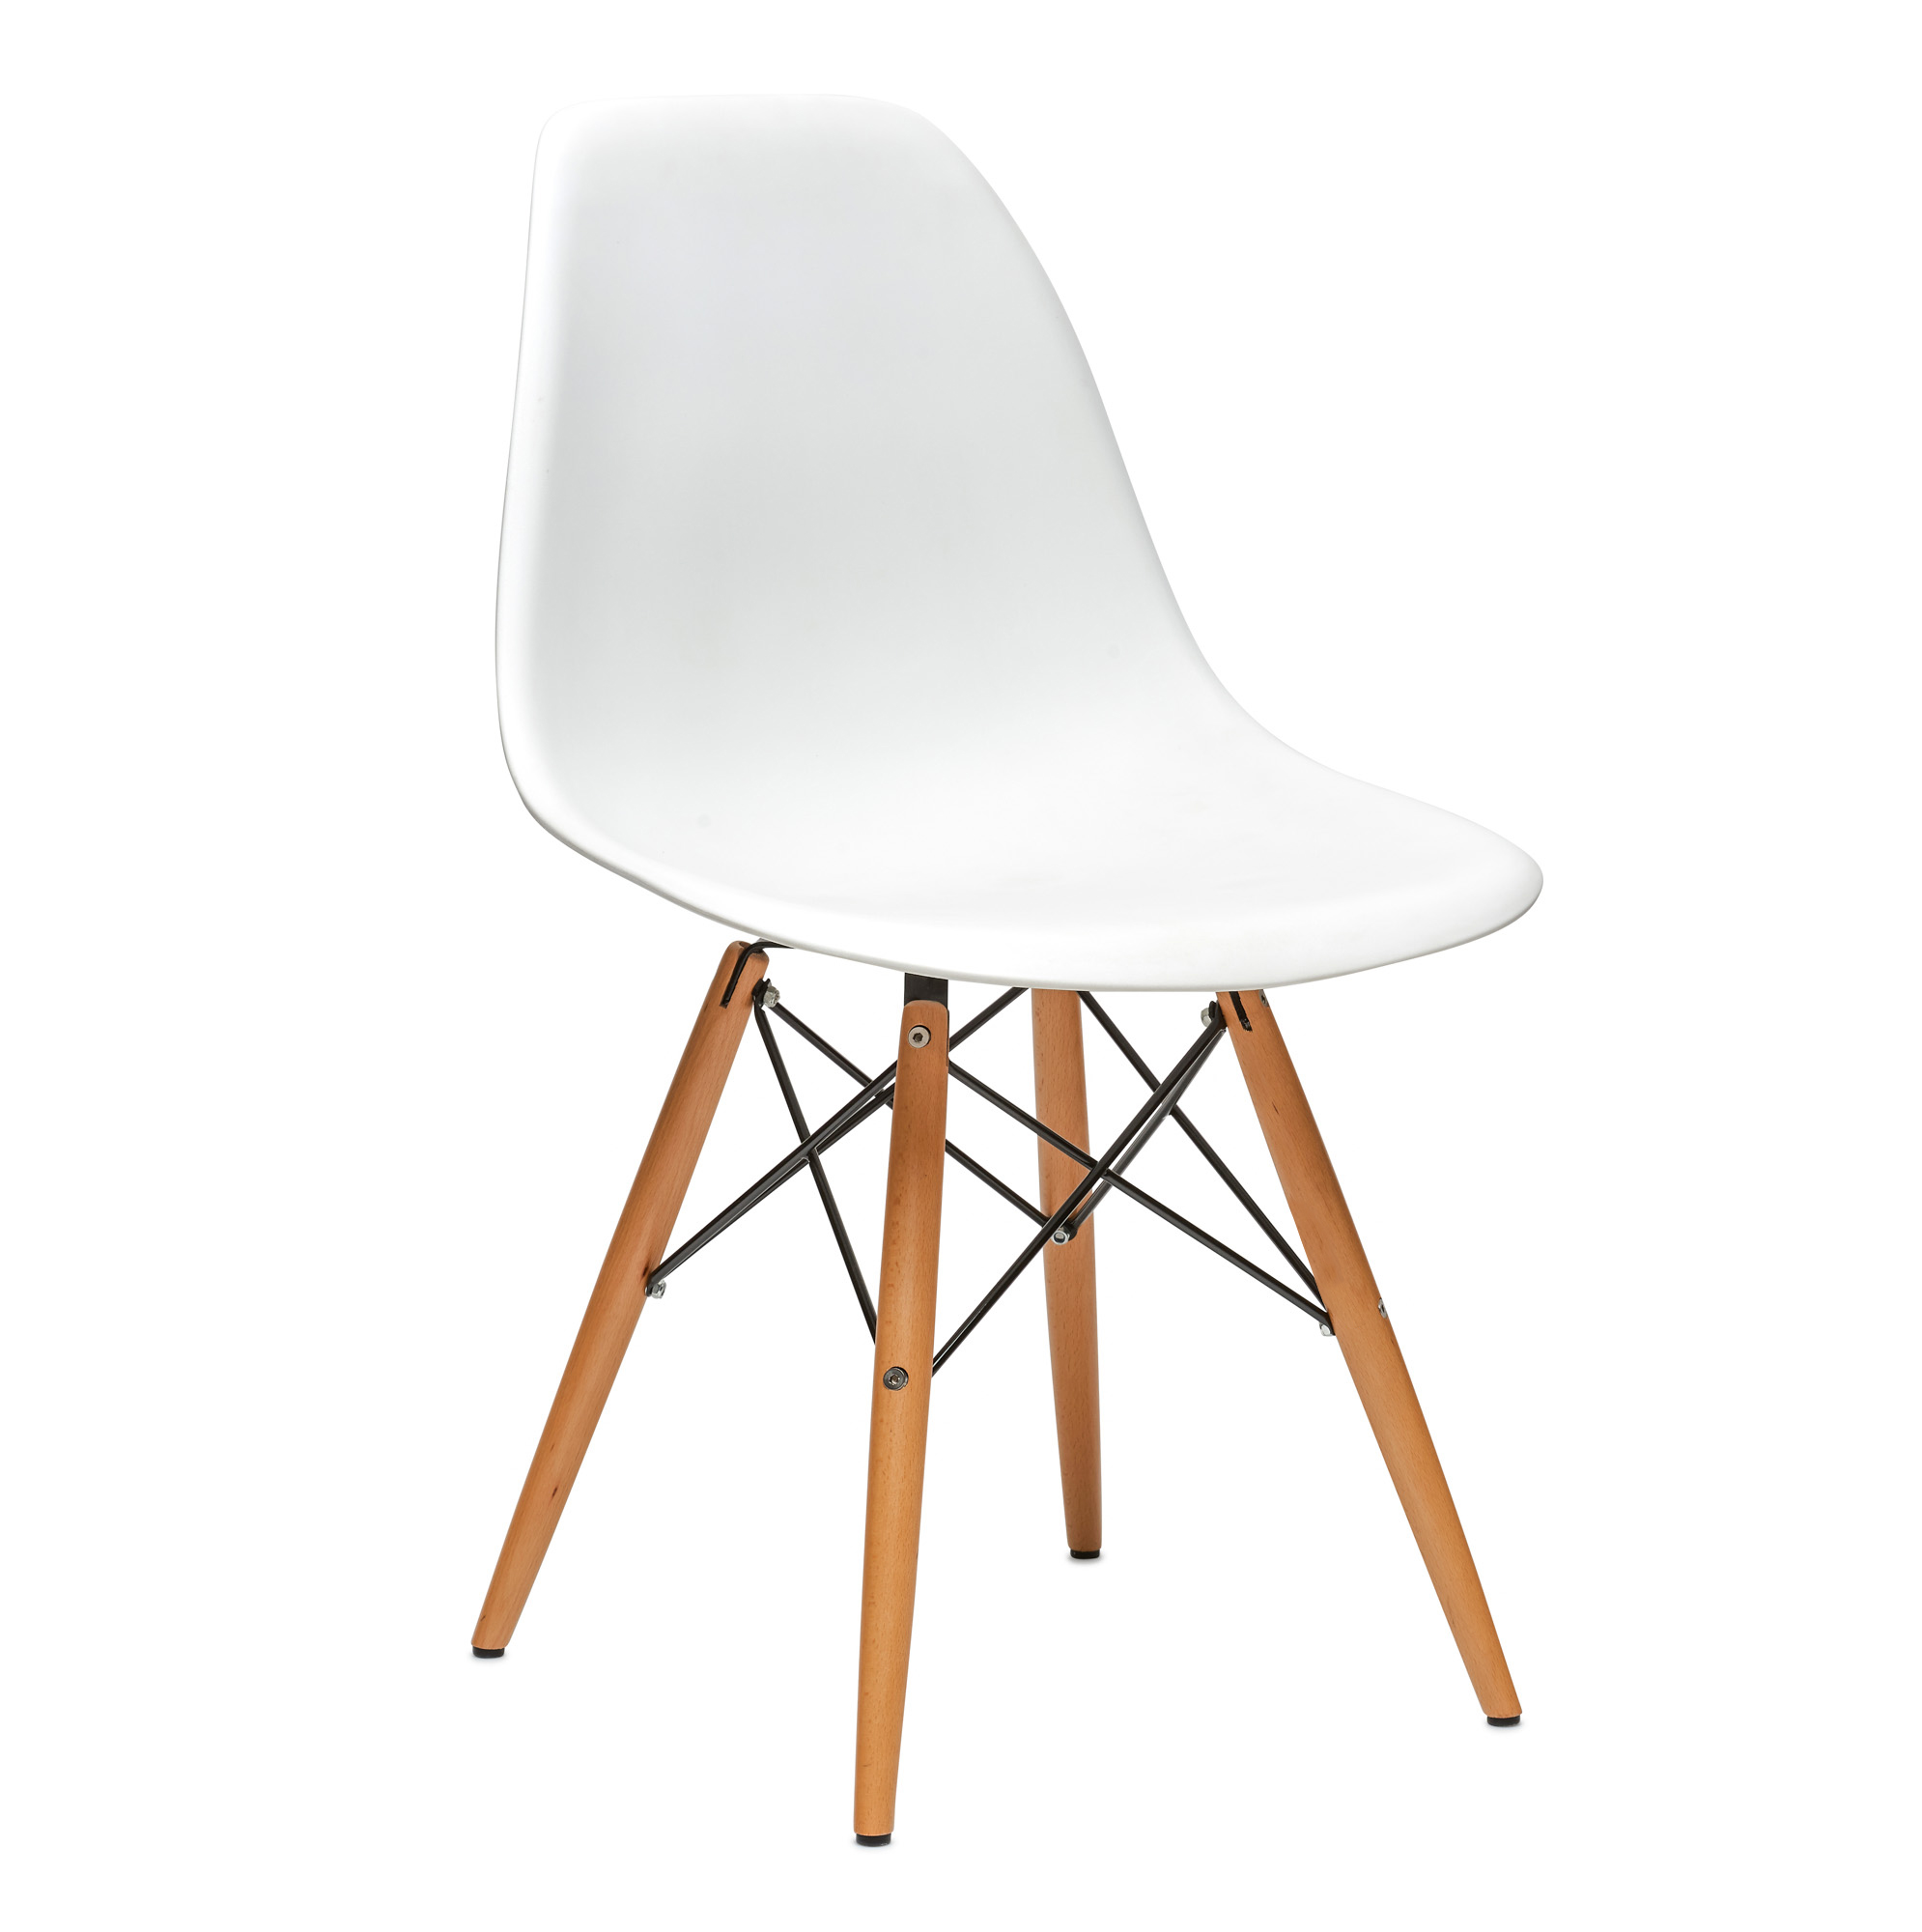 Eames Dsw Side Chair.Eames Plastic Side Chair DSW Design And ...